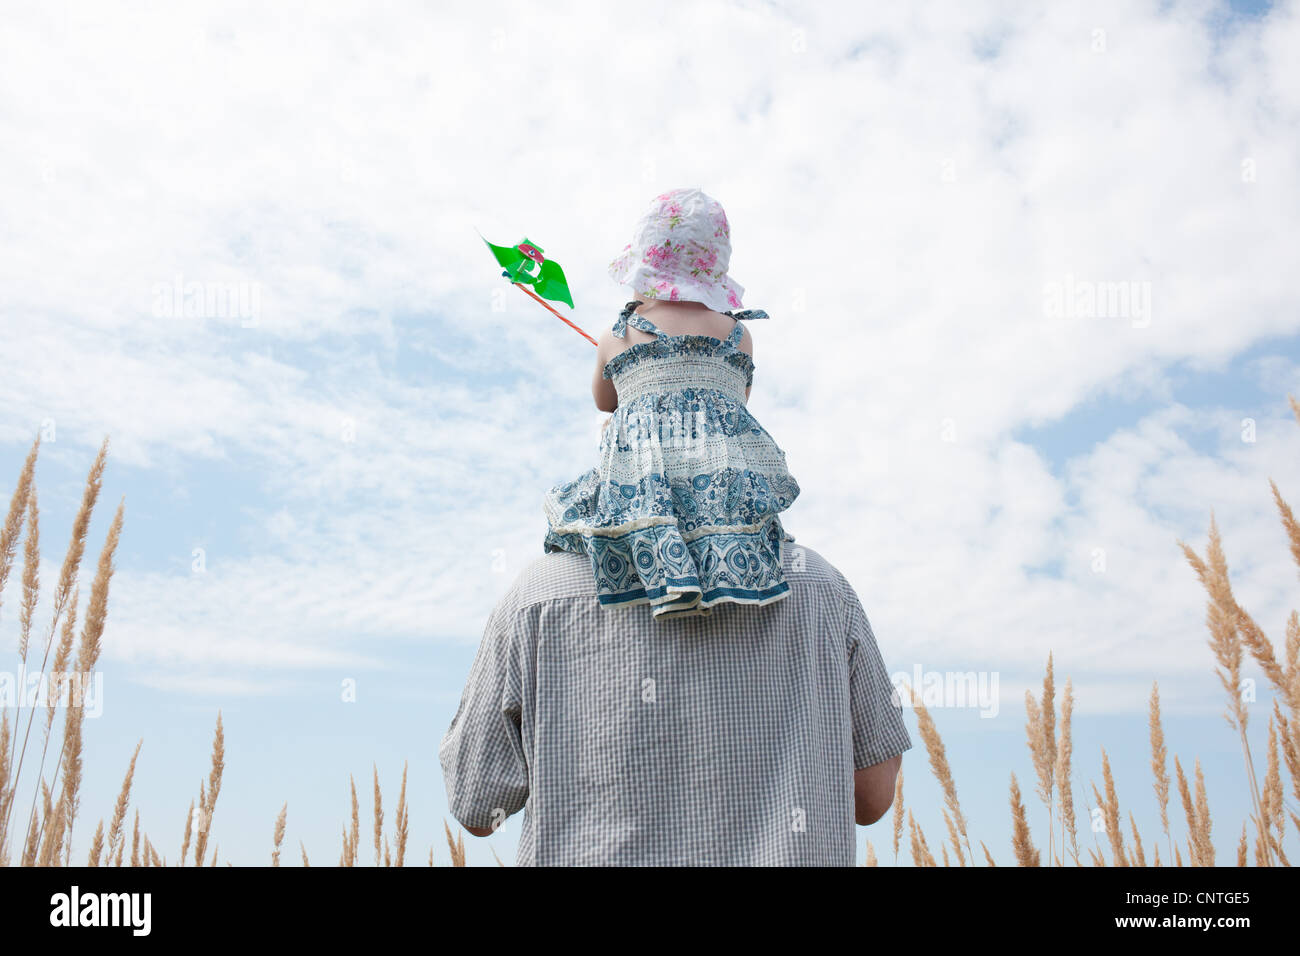 Man carrying daughter on shoulders Photo Stock